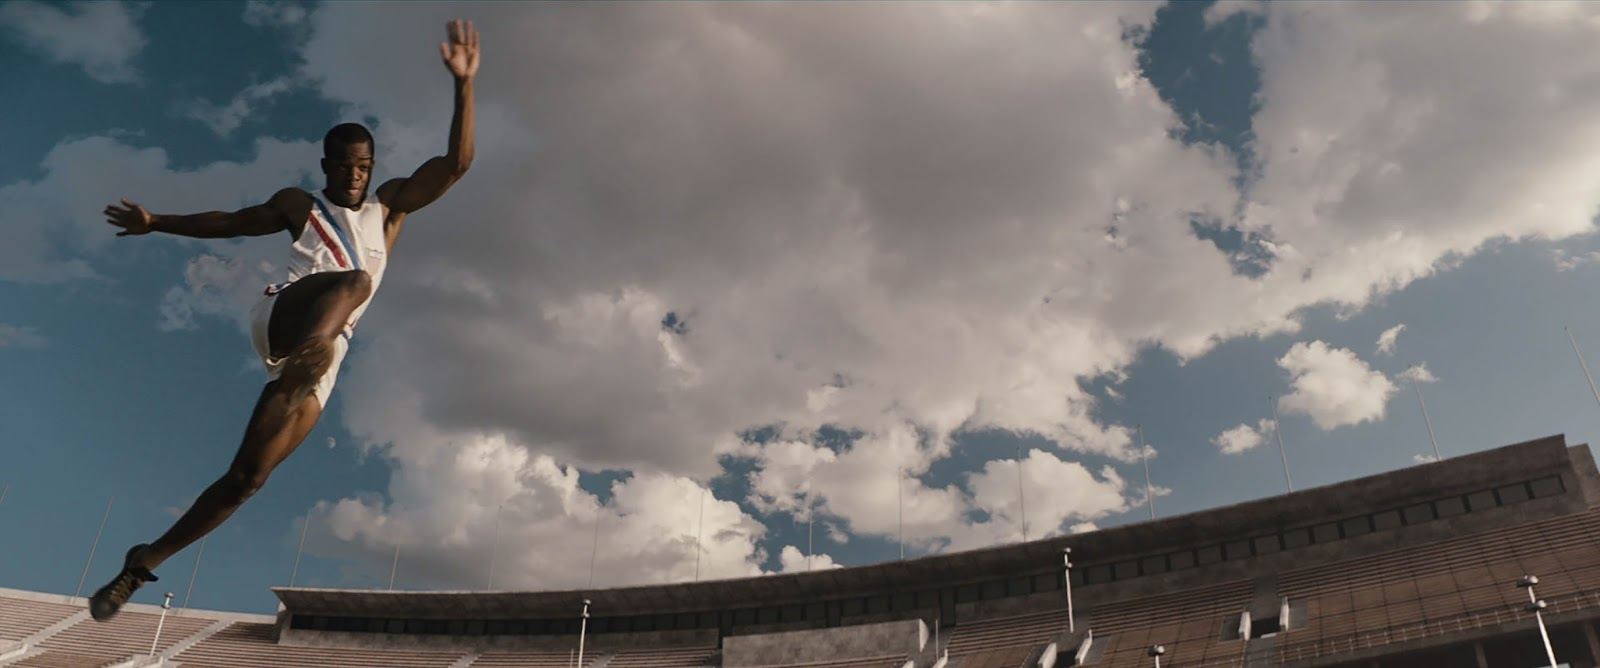 interchange  stephan james as jesse owens photo by thibault grabherr copy 2014 focus features llc